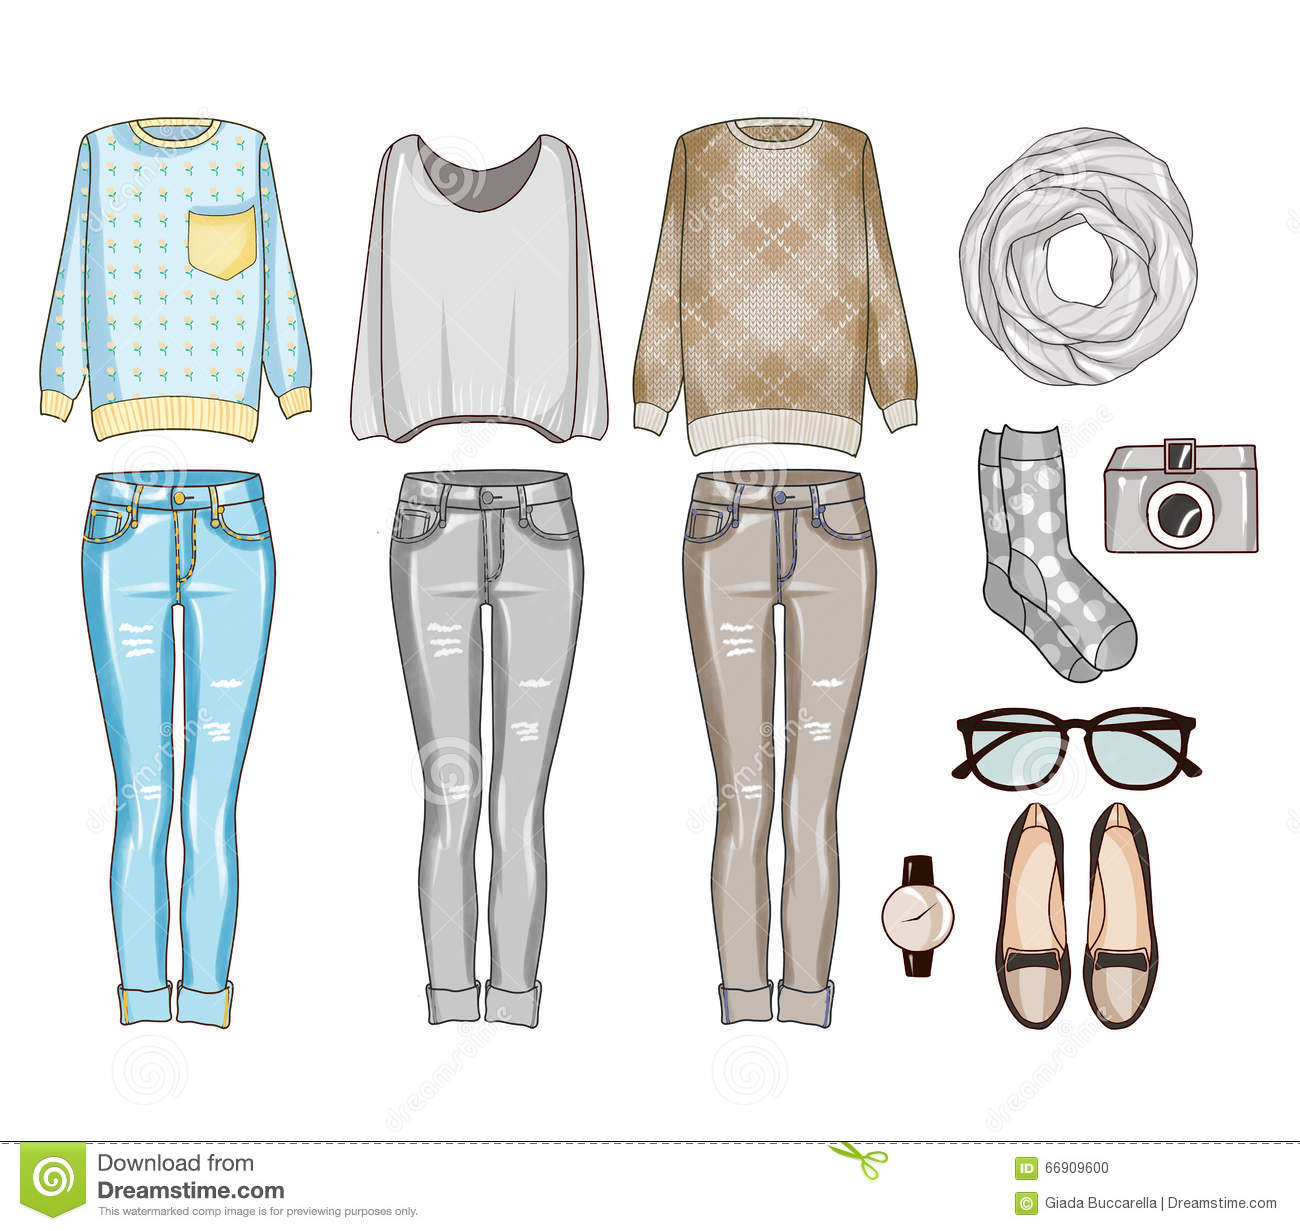 Fashion for women clip art - Fashion Set Of Woman S Clothes Accessories And Shoes Casual Outfits Clip Art Stock